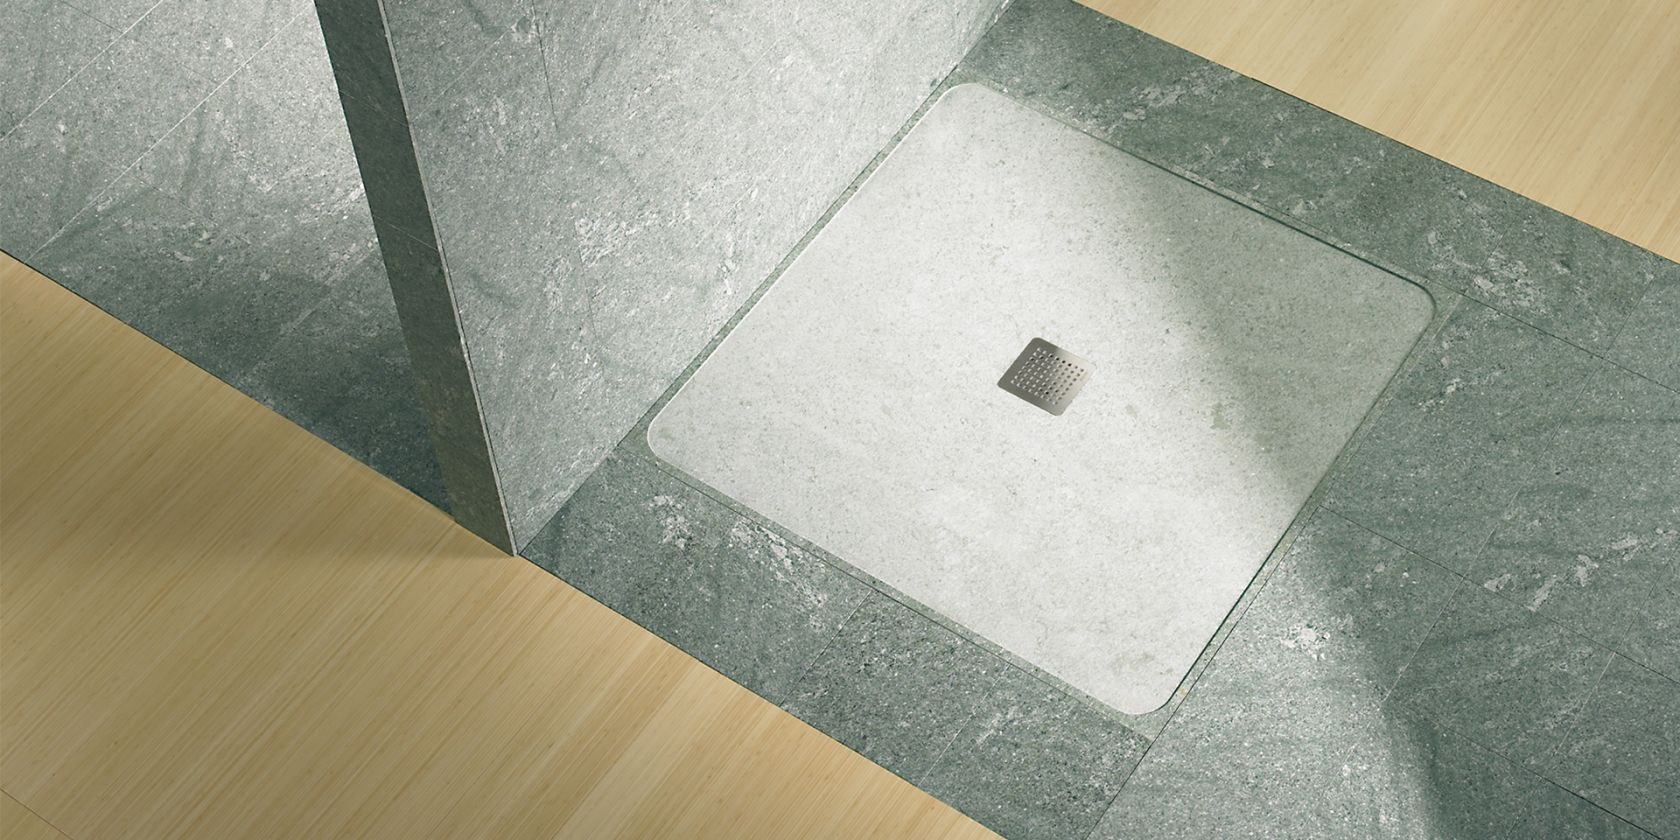 32 N / 30 N. Specially for natural stone shower trays